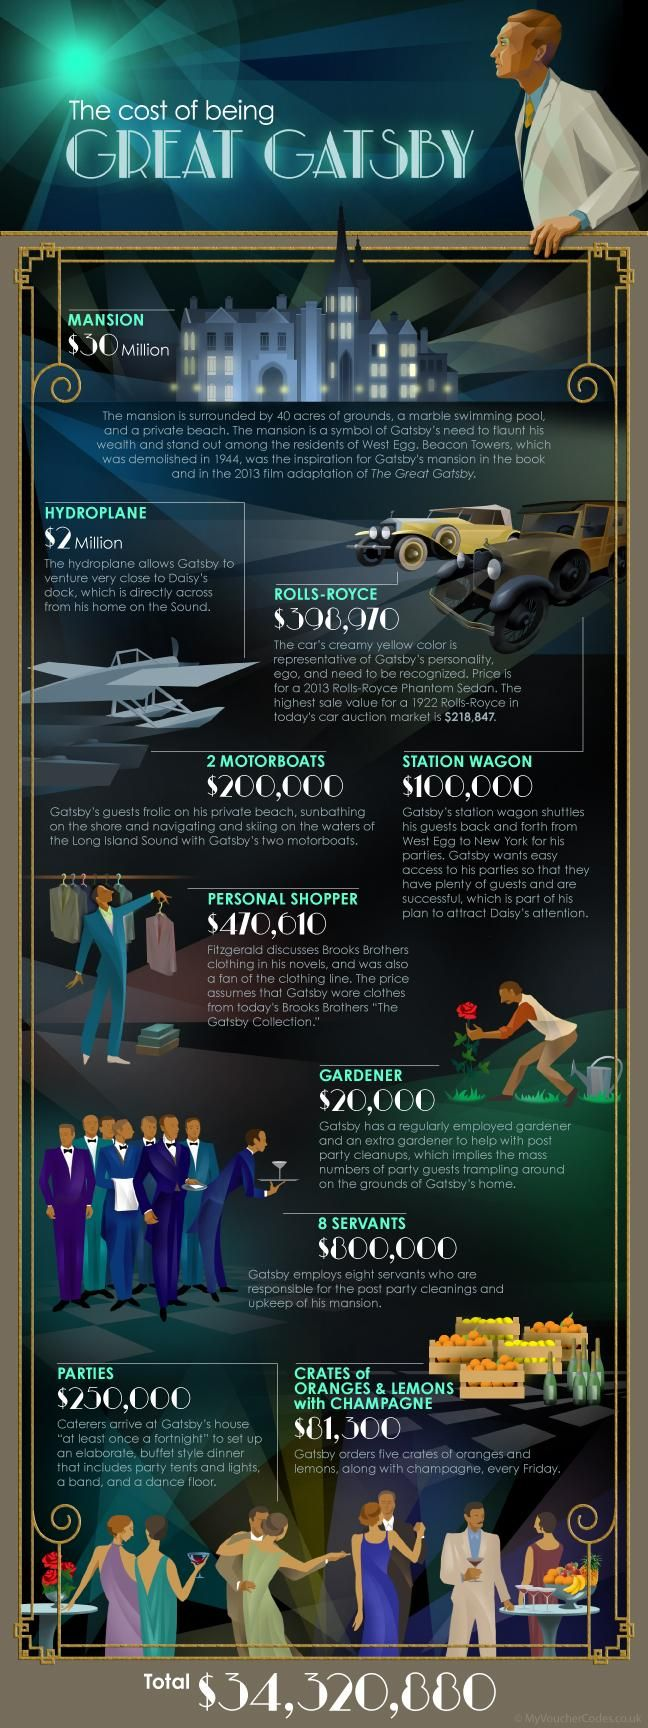 How Much Would It Cost to Be the Great Gatsby?